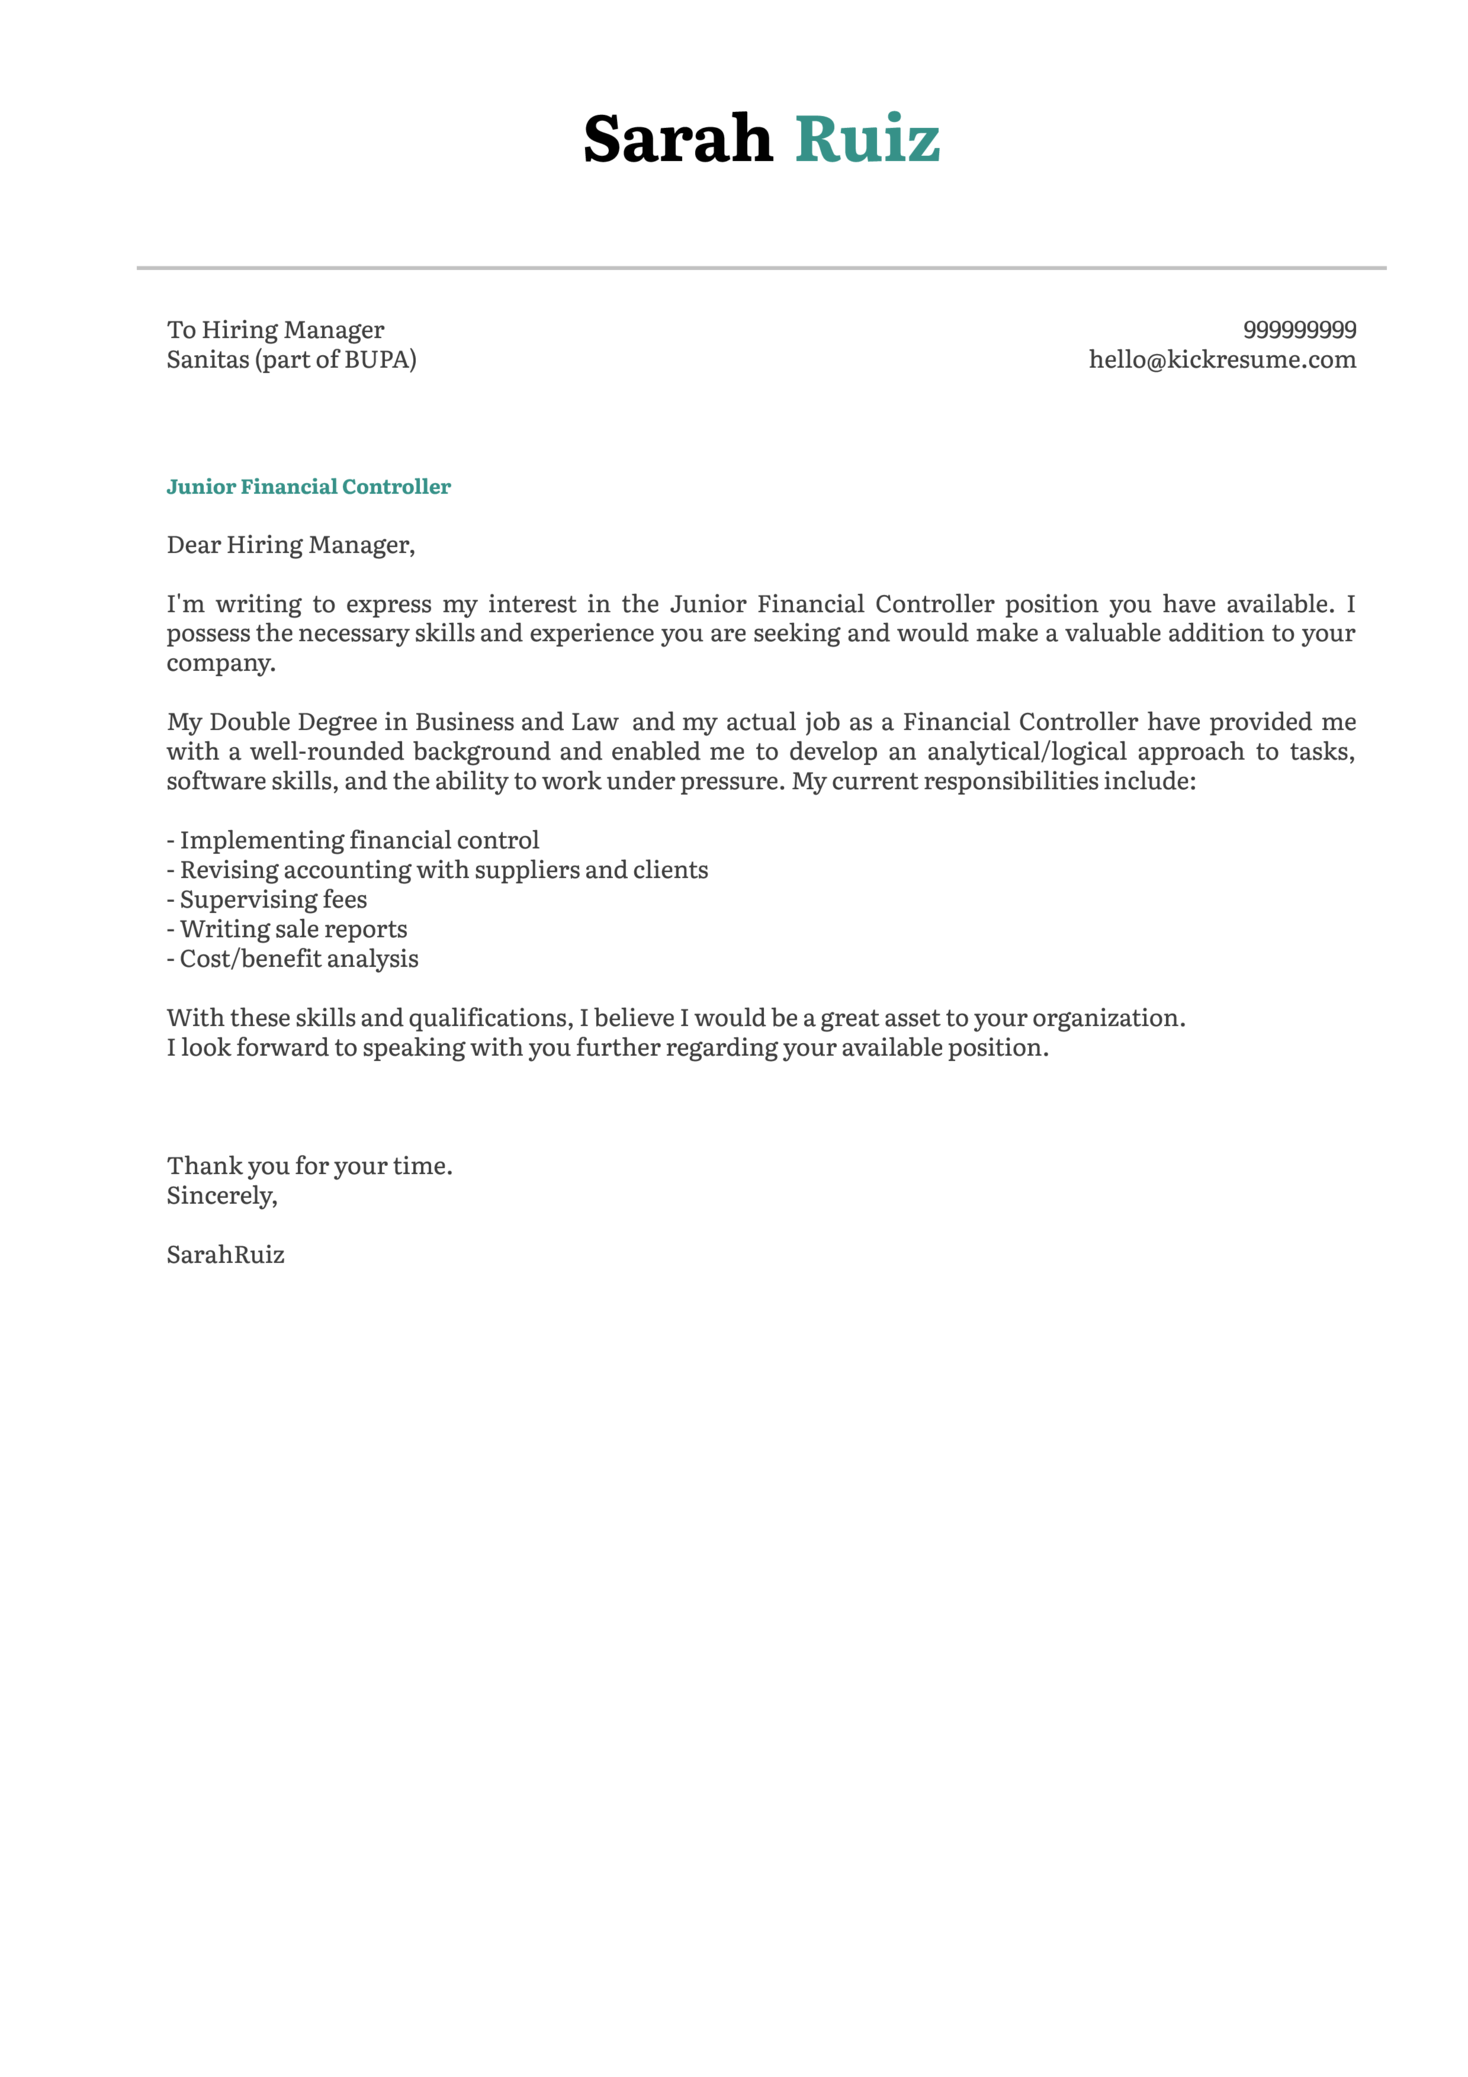 cover letter examples by real people  junior financial